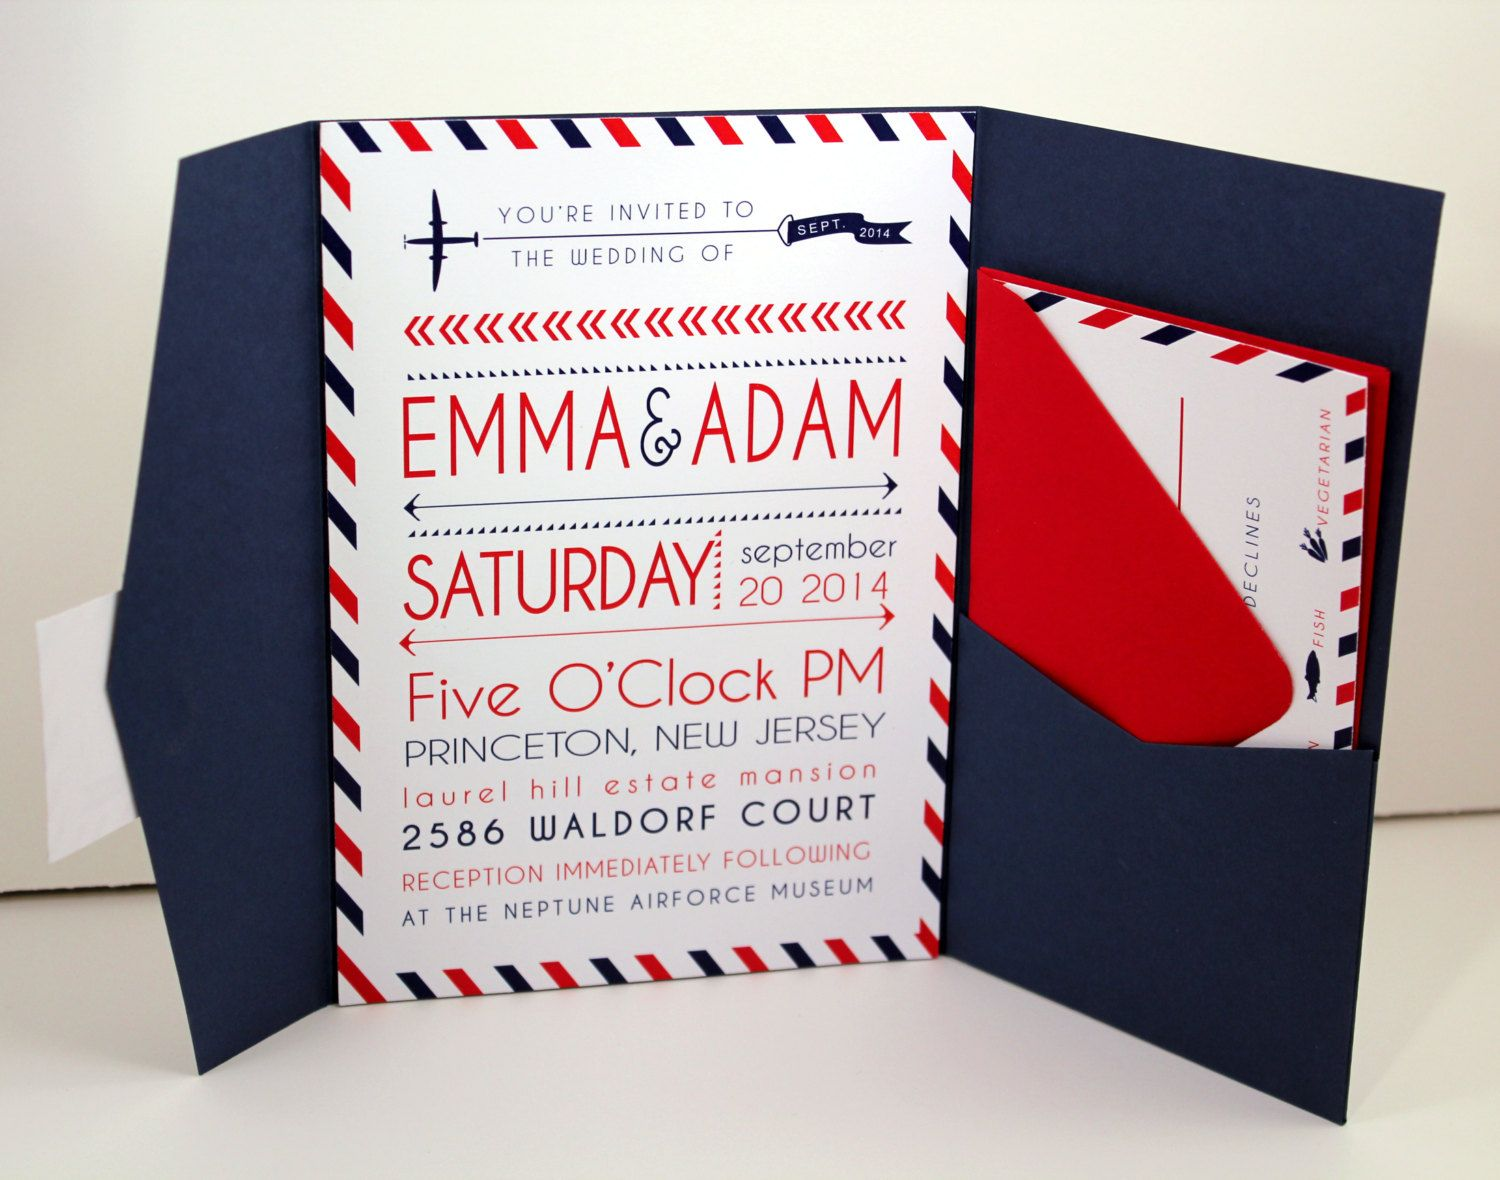 Travel Theme Pocketfold Wedding Invitations Red And Navy Colors With Postal Stripes Airplane